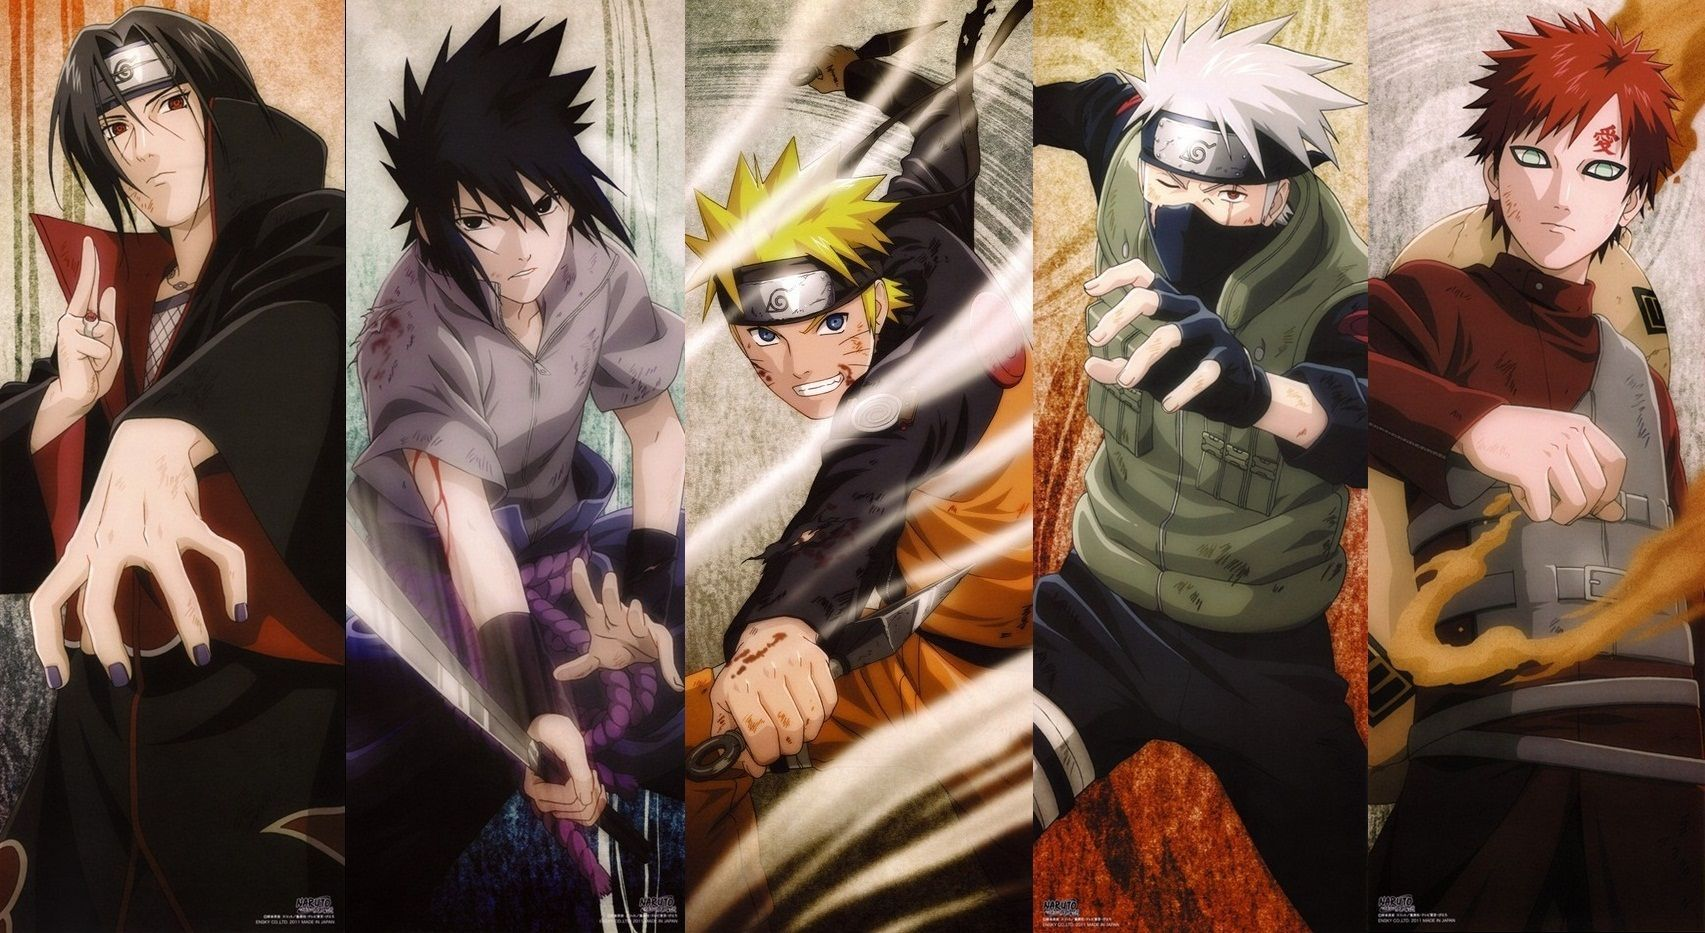 Good Wallpaper Naruto High Definition - dbc2dbfaf22e9454a9e14da8a29fab58  Gallery_845069.jpg